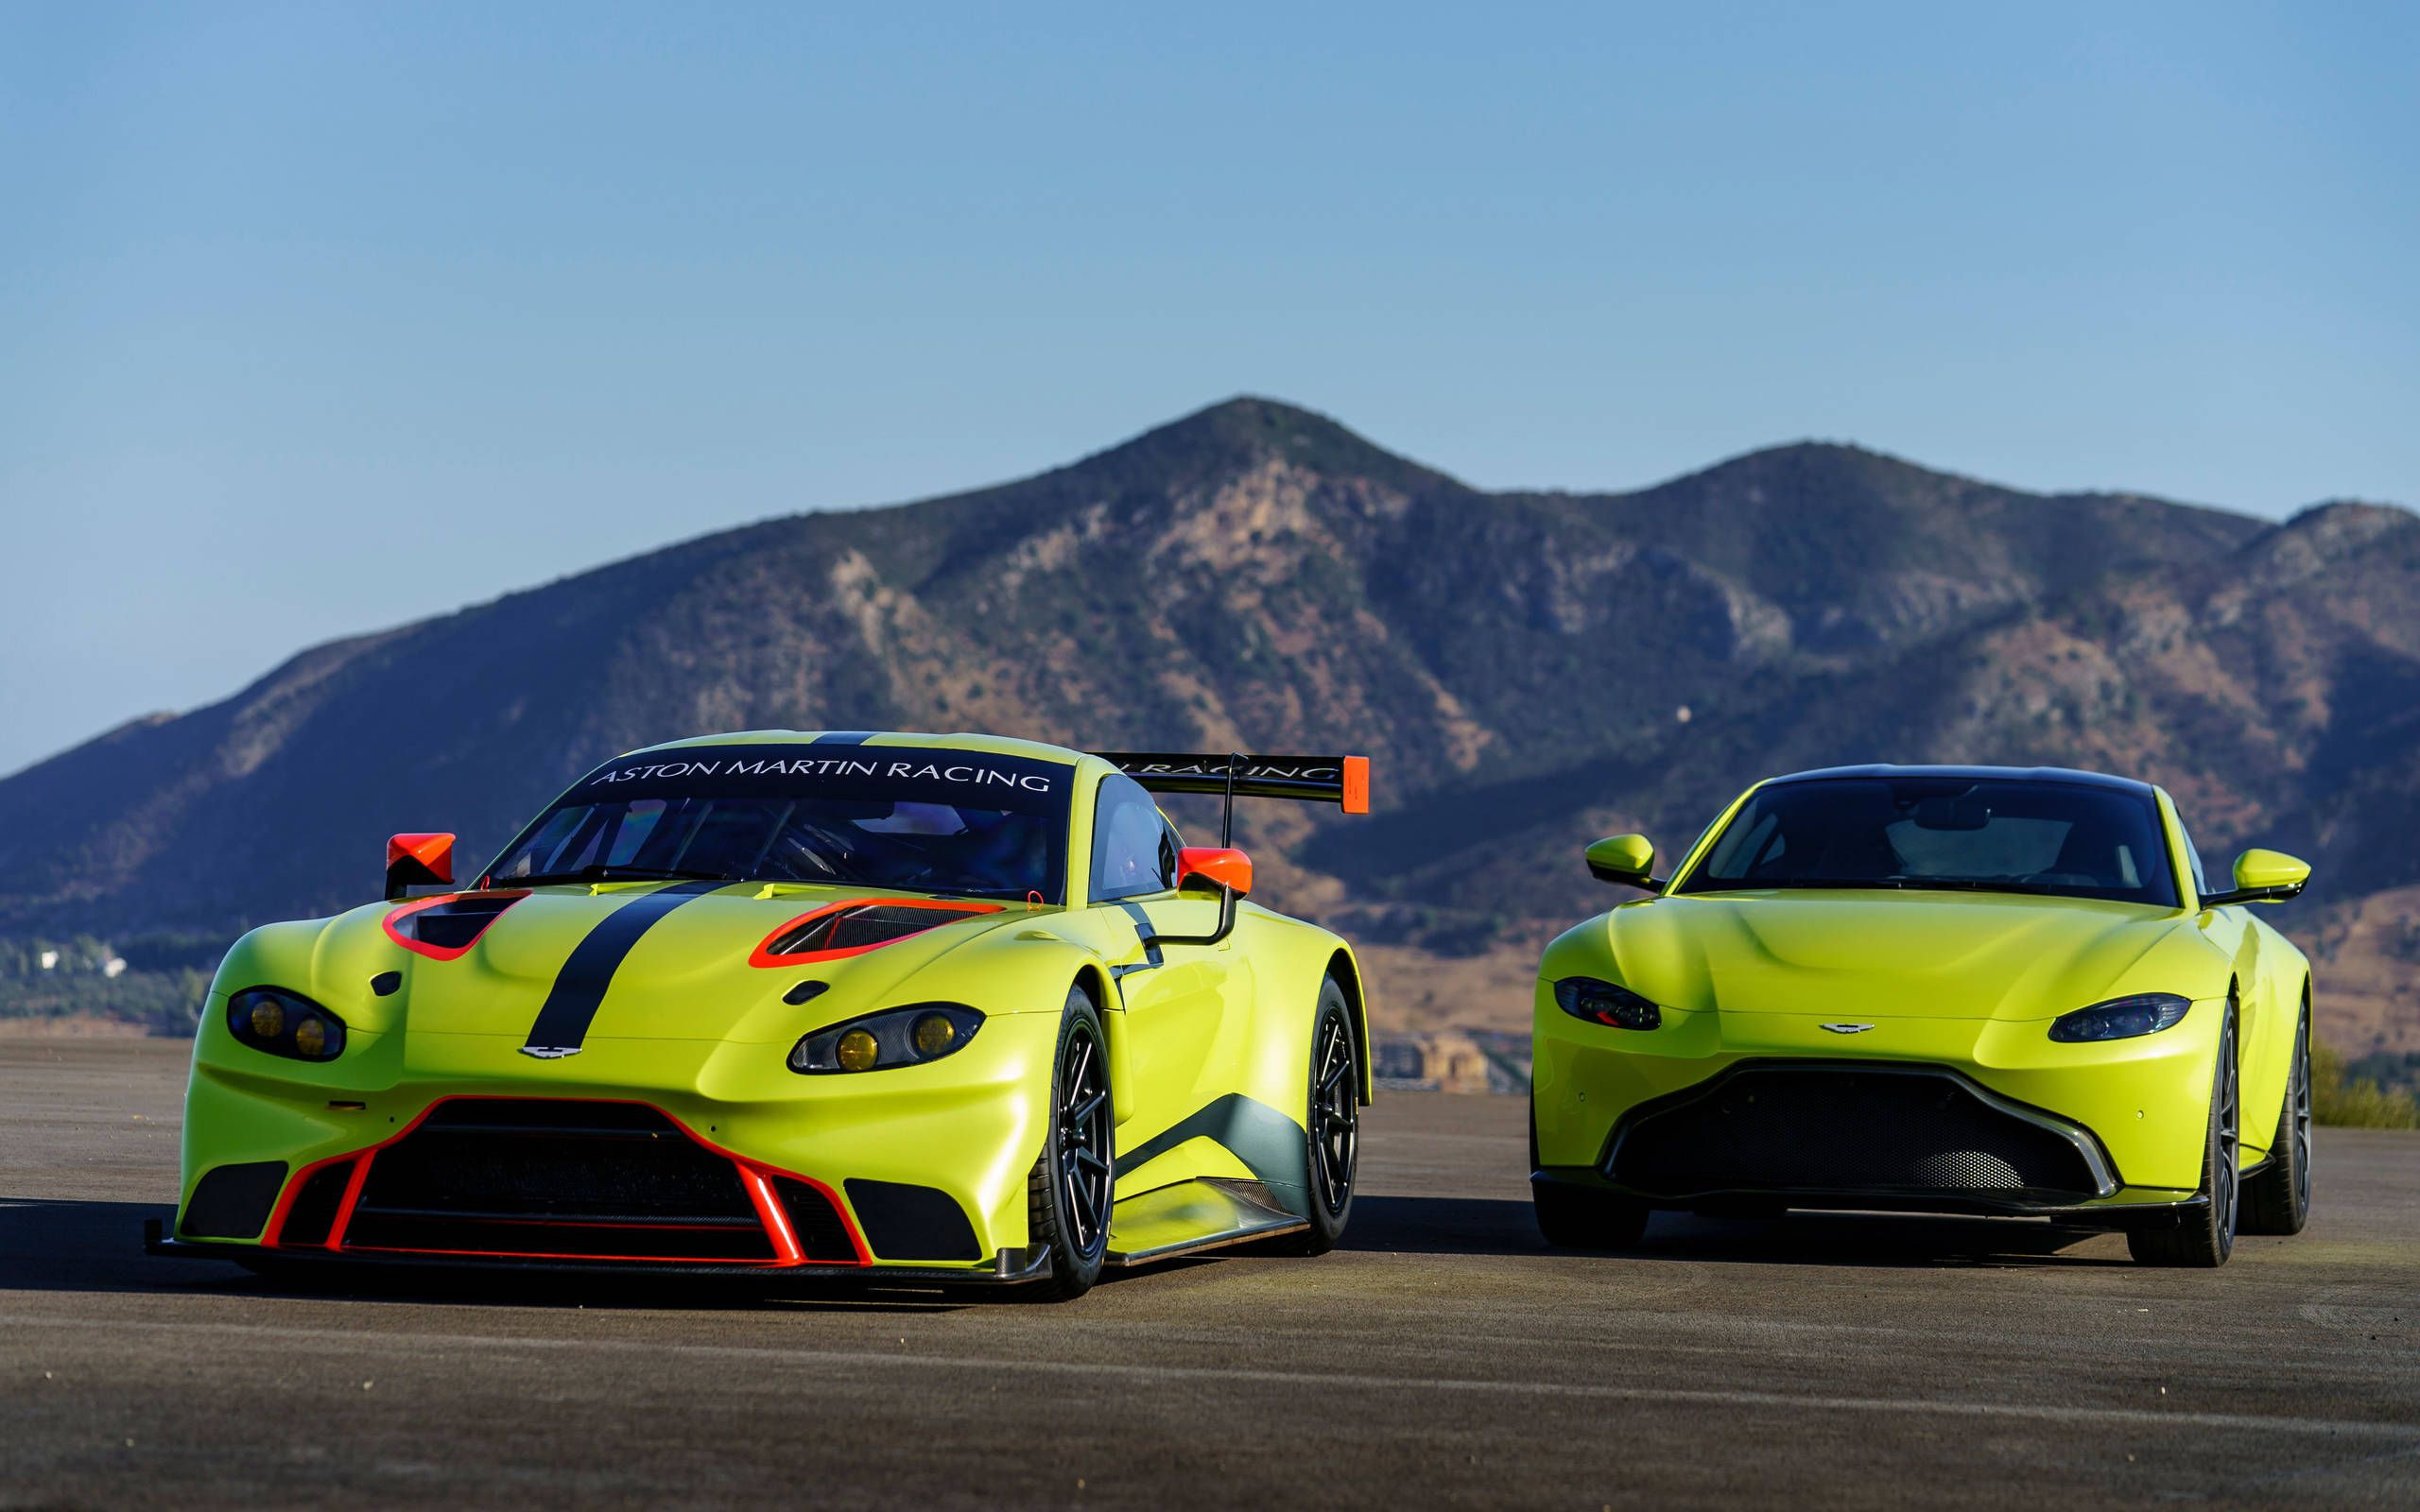 Here S What The 2018 Aston Martin Vantage Looks Like As A Race Car